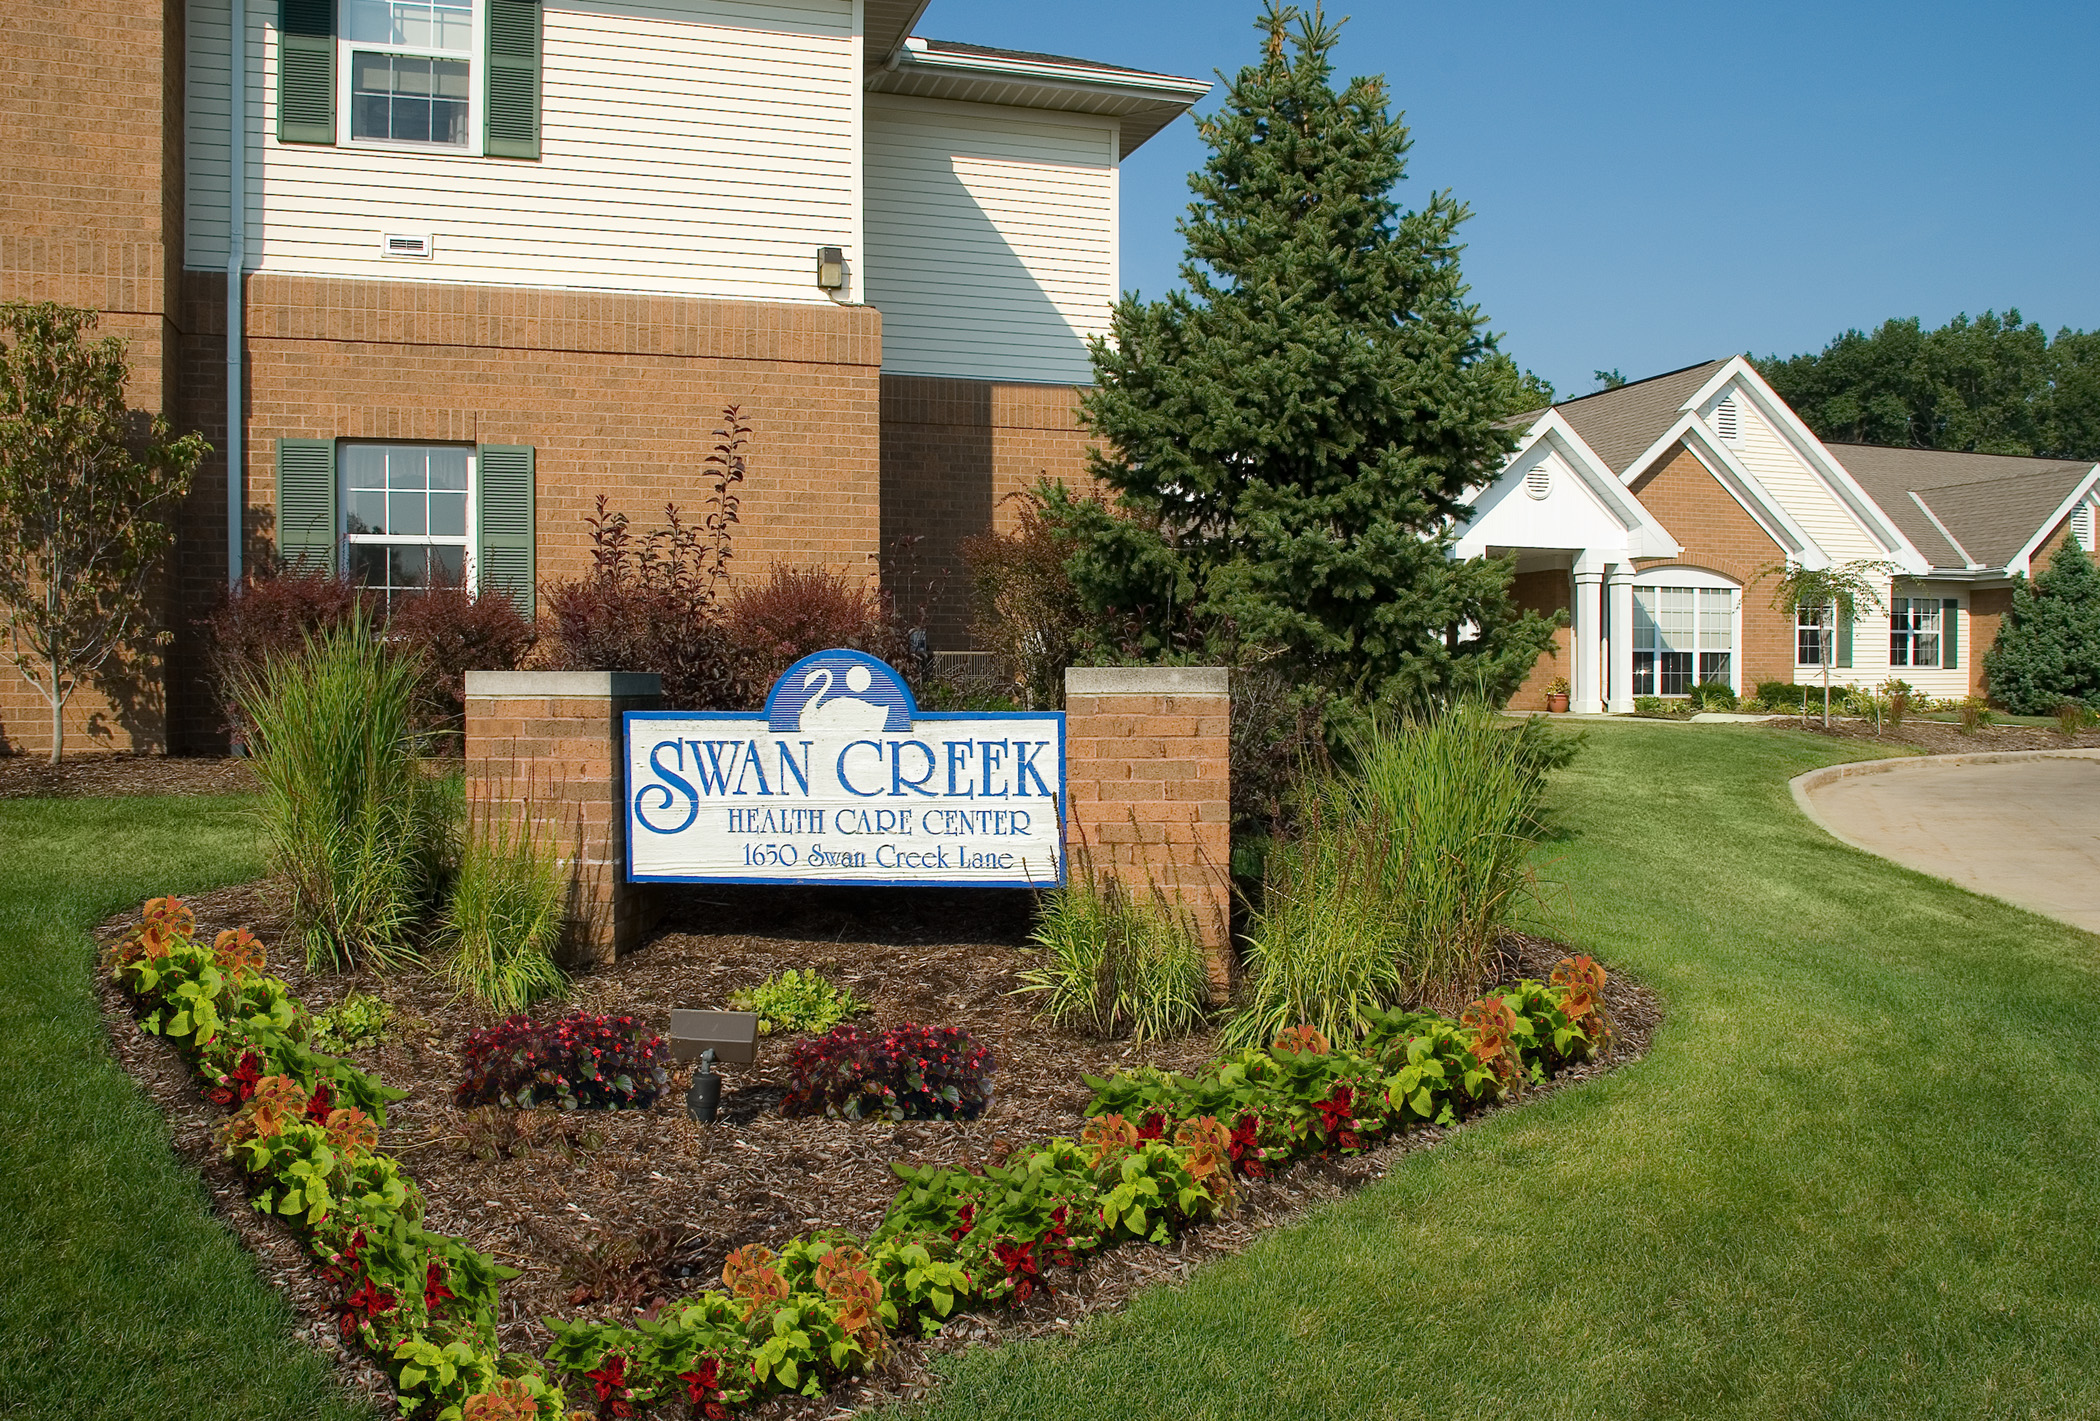 39 u s news 39 rates swan creek retirement village in america Best villages in america